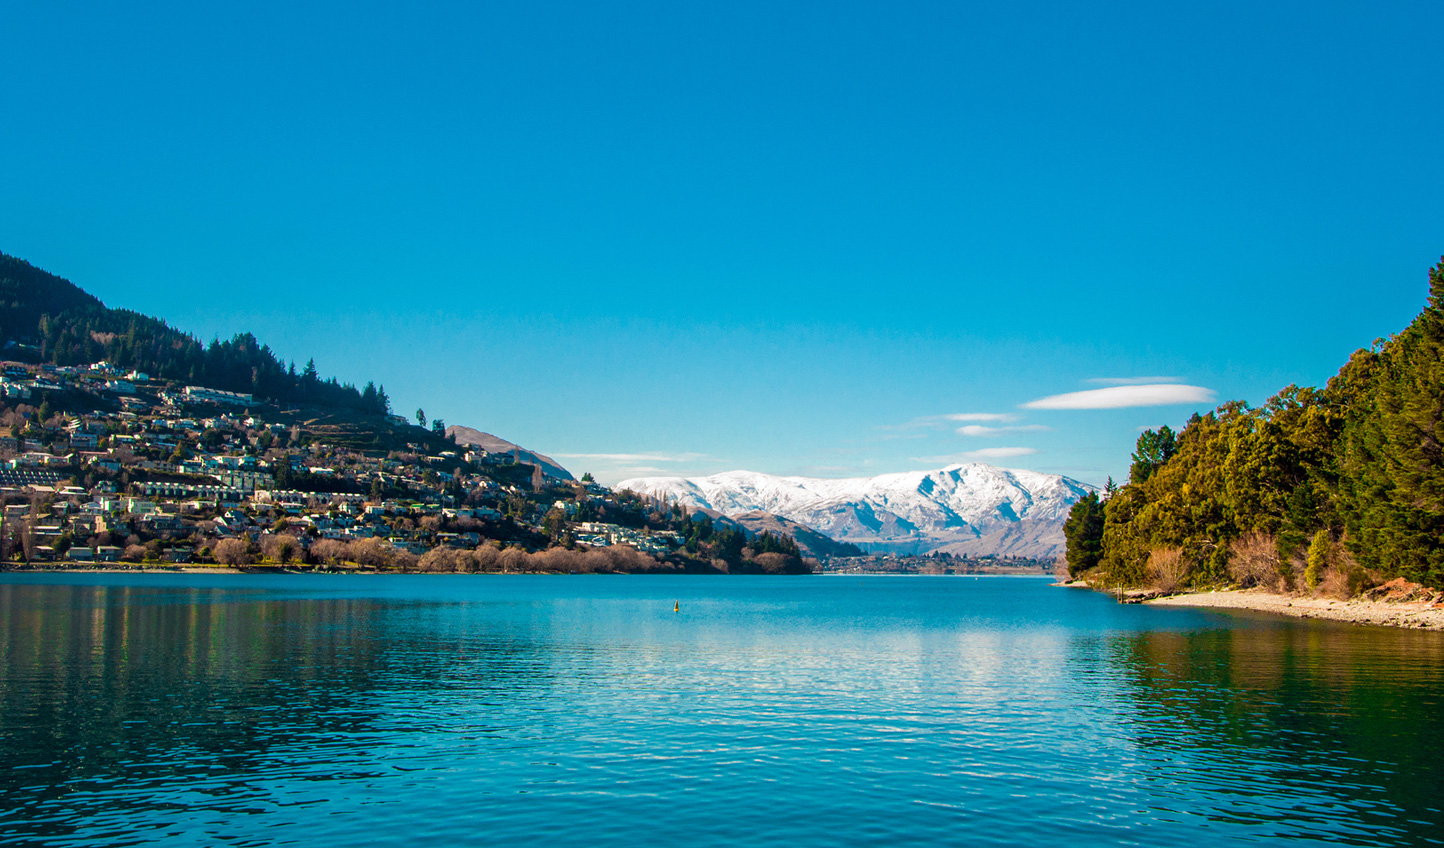 Get in touch with your adventurous side down in Queenstown